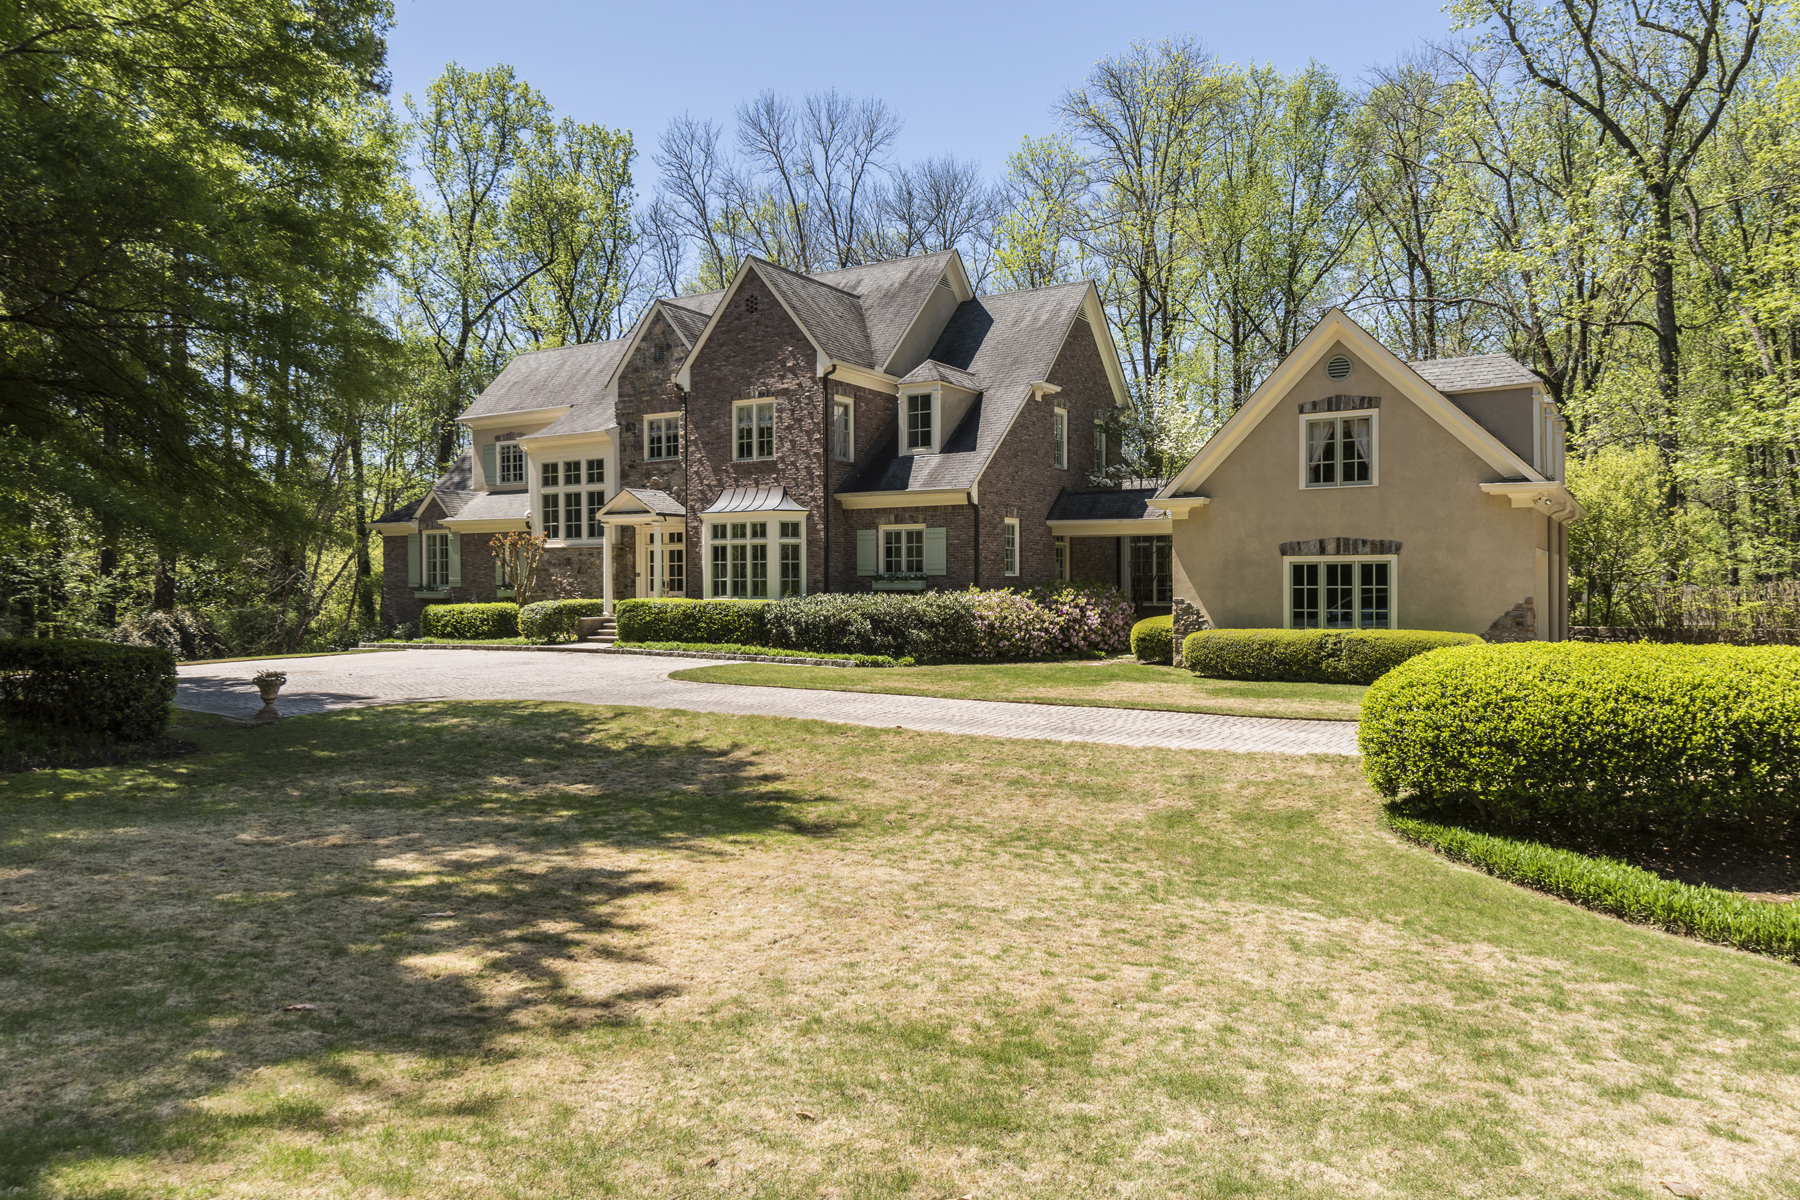 Maison unifamiliale pour l Vente à Custom House Estate Setting 800 Fairfield Road NW Buckhead, Atlanta, Georgia, 30327 États-Unis